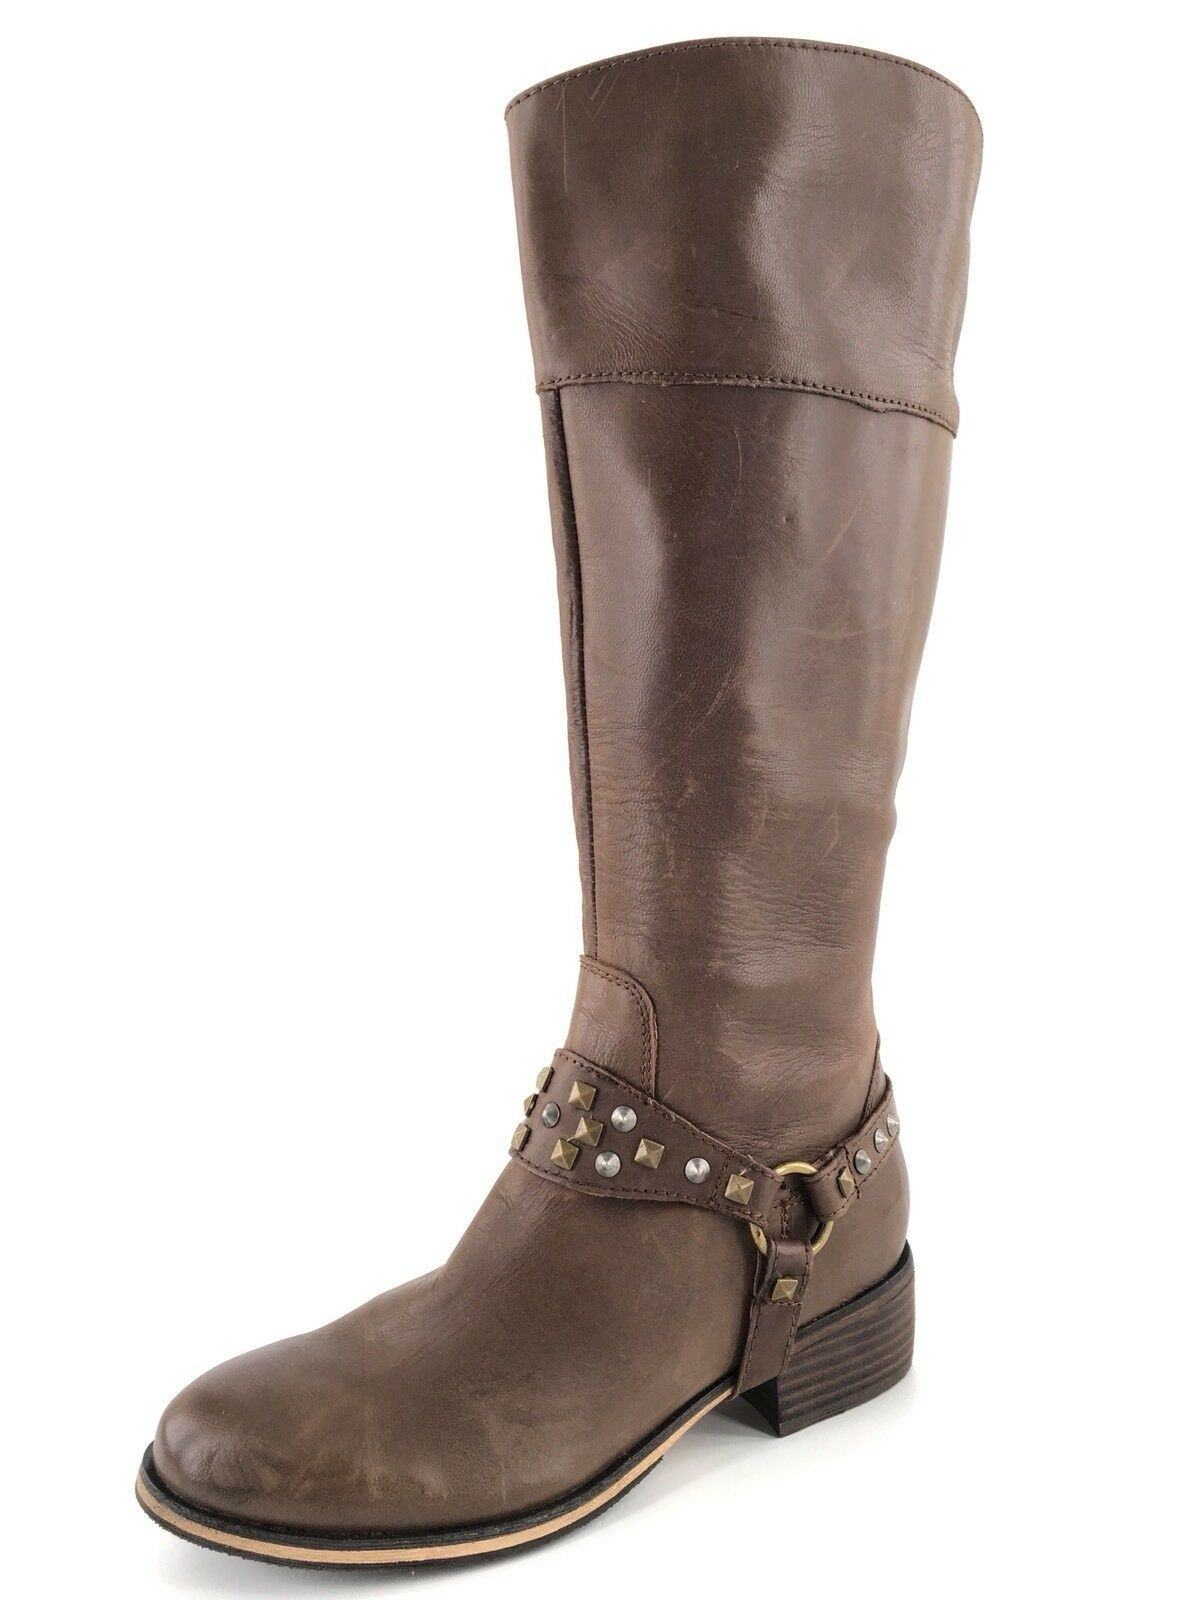 BP Bella Brown Leather Knee High Studded Harness Riding Boots Women's Size 5 M *